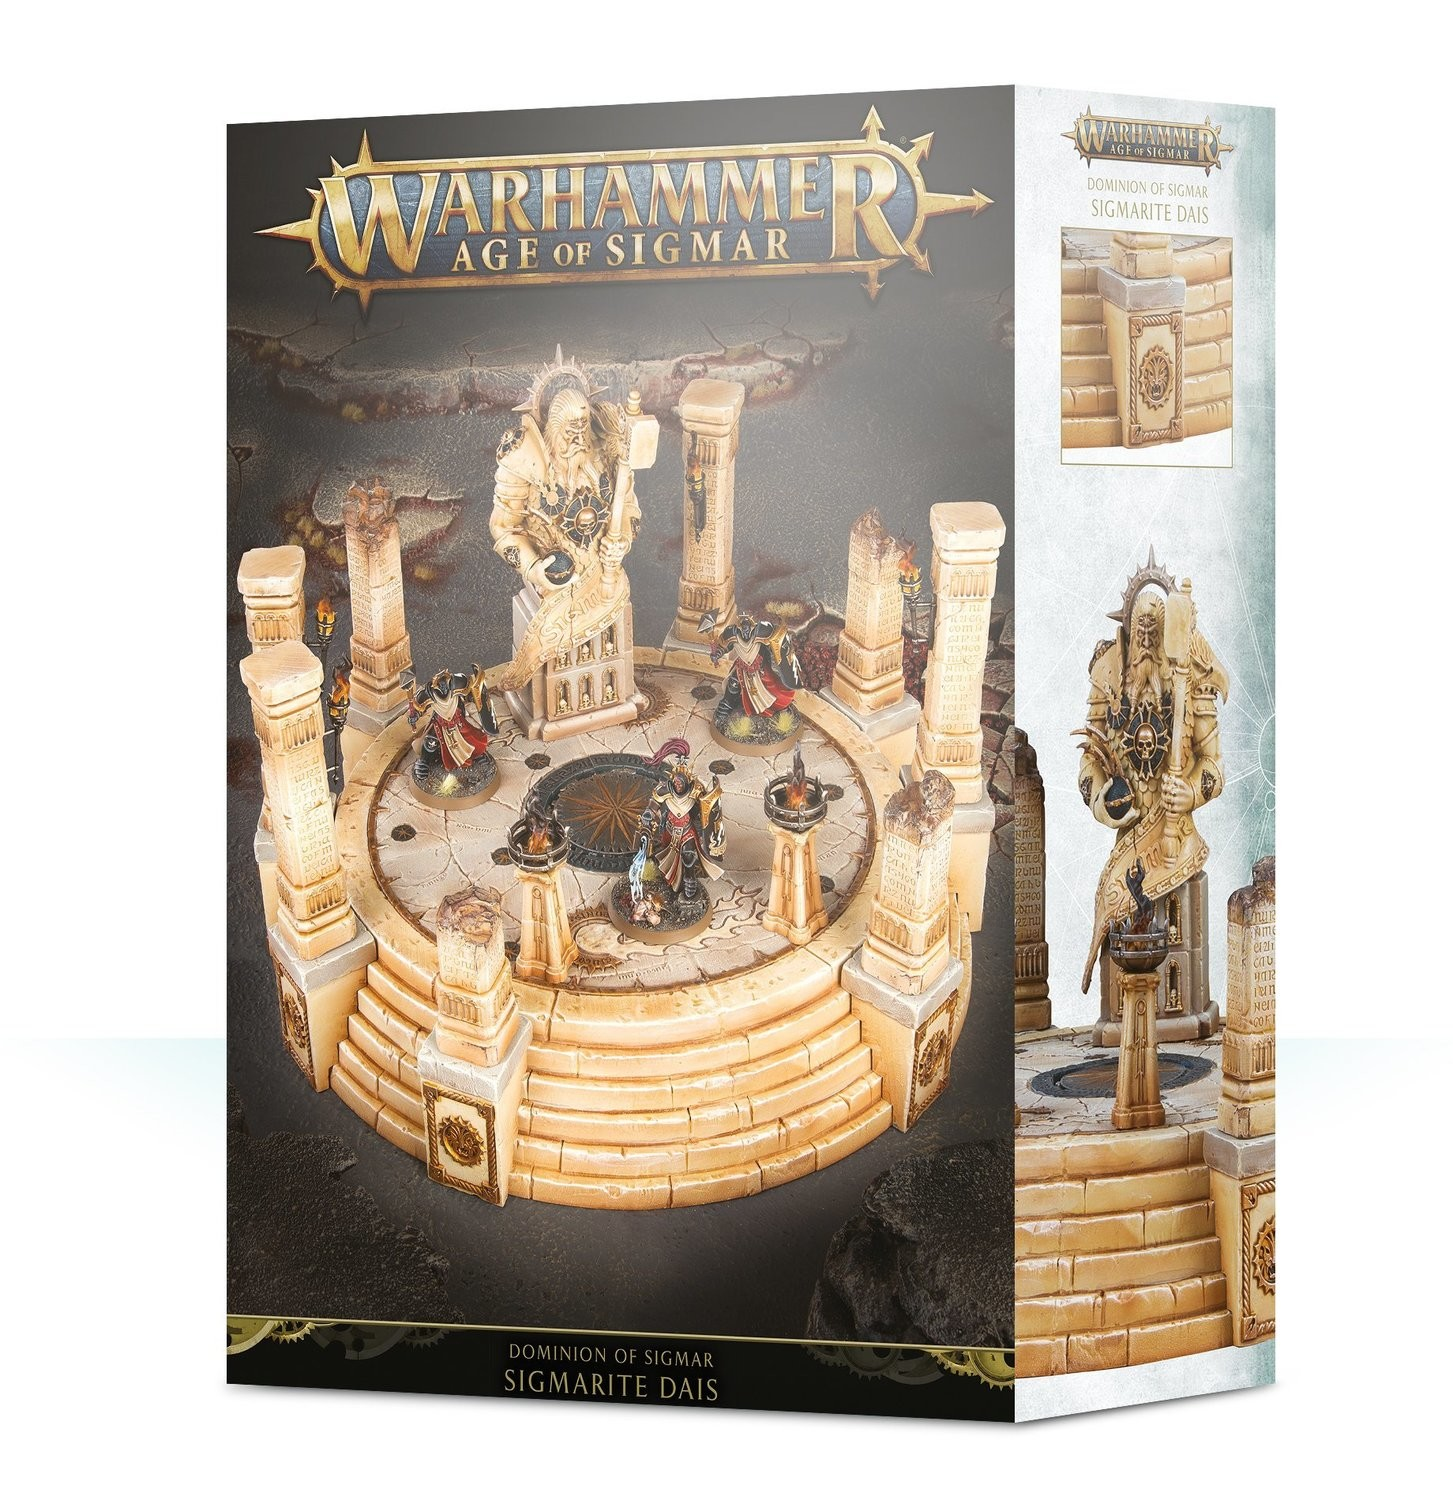 Dominion of Sigmar: Sigmarite Dais - Warhammer Age of Sigmar Gelände - Games Workshop